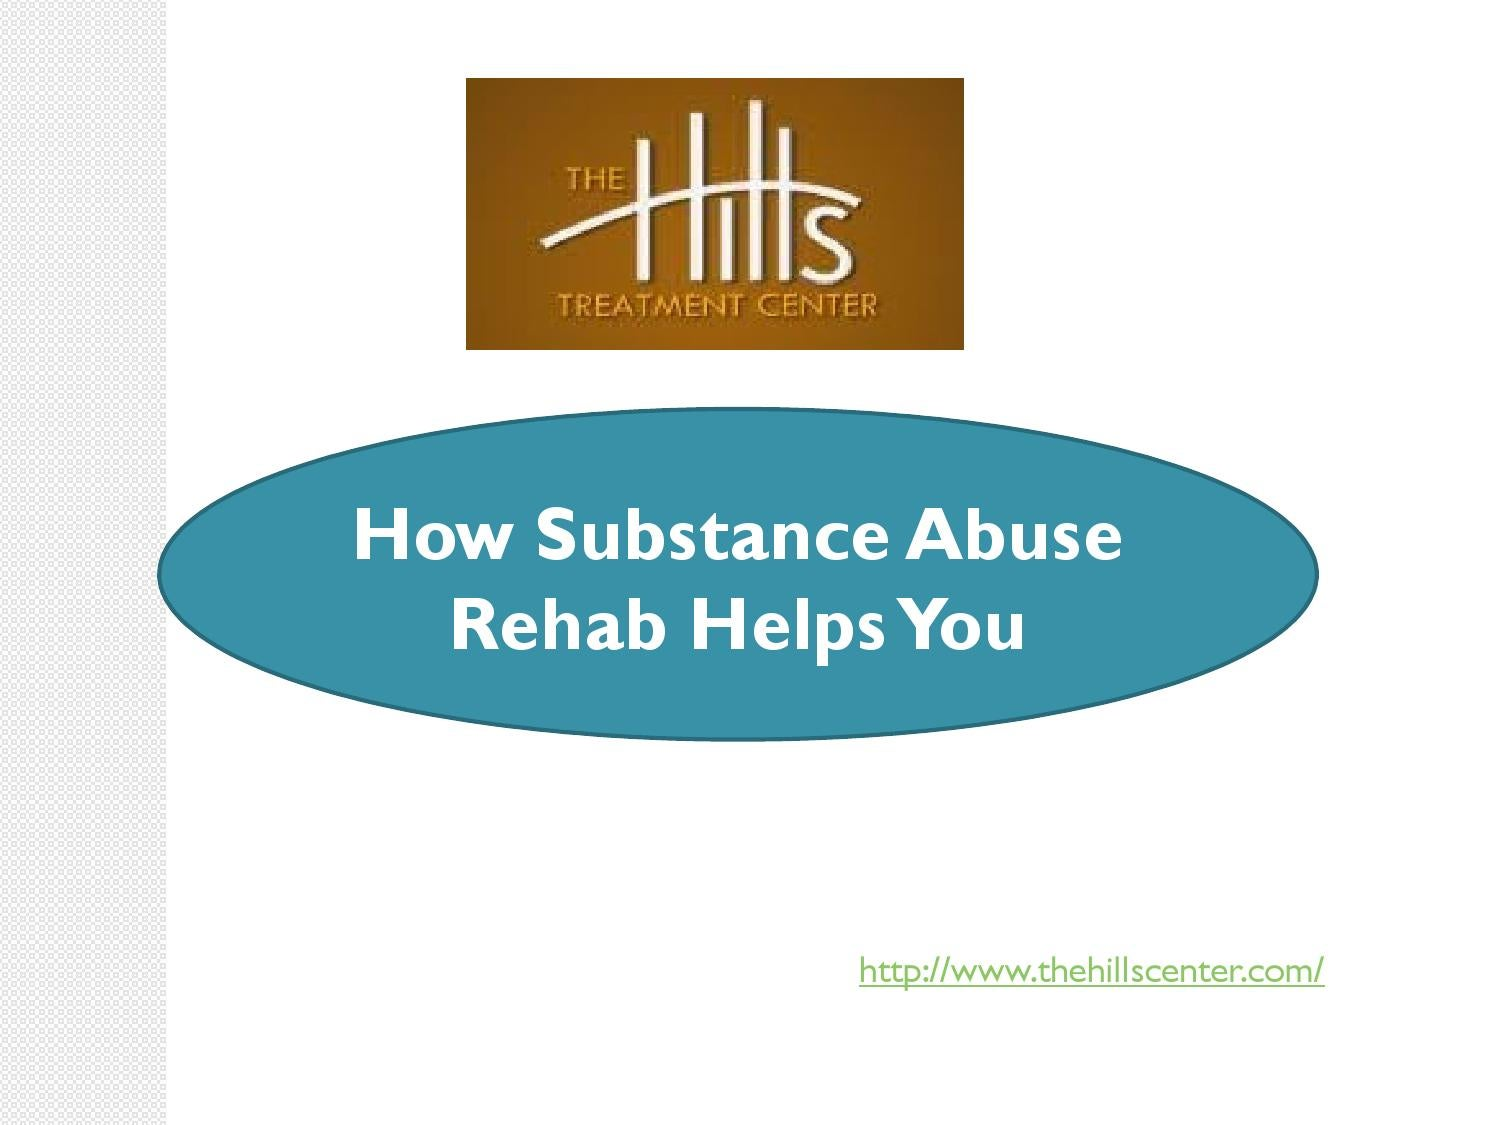 How Substance Abuse Rehab Helps You by Nancyfrances - issuu